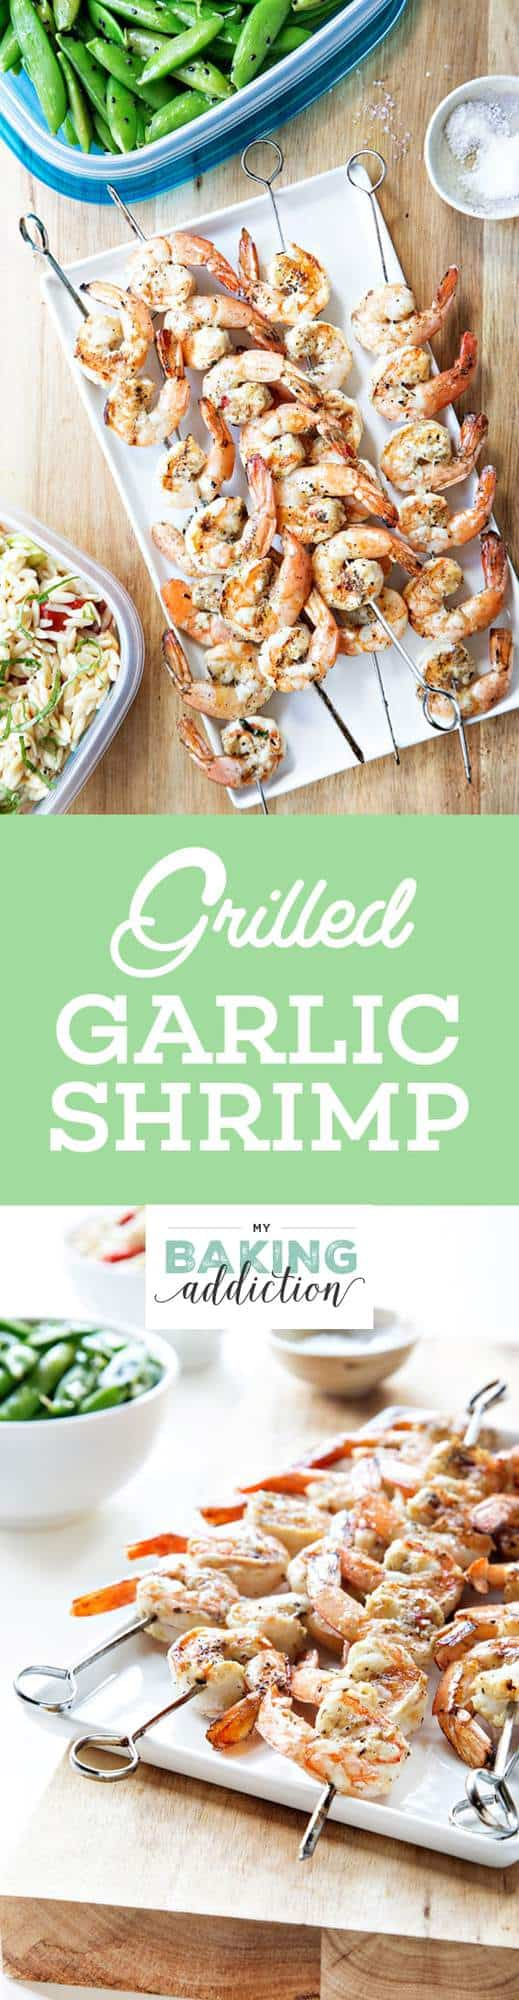 Grilled Garlic Basil Shrimp has a simple marinade of garlic, herbs, olive oil, and white wine. So easy!